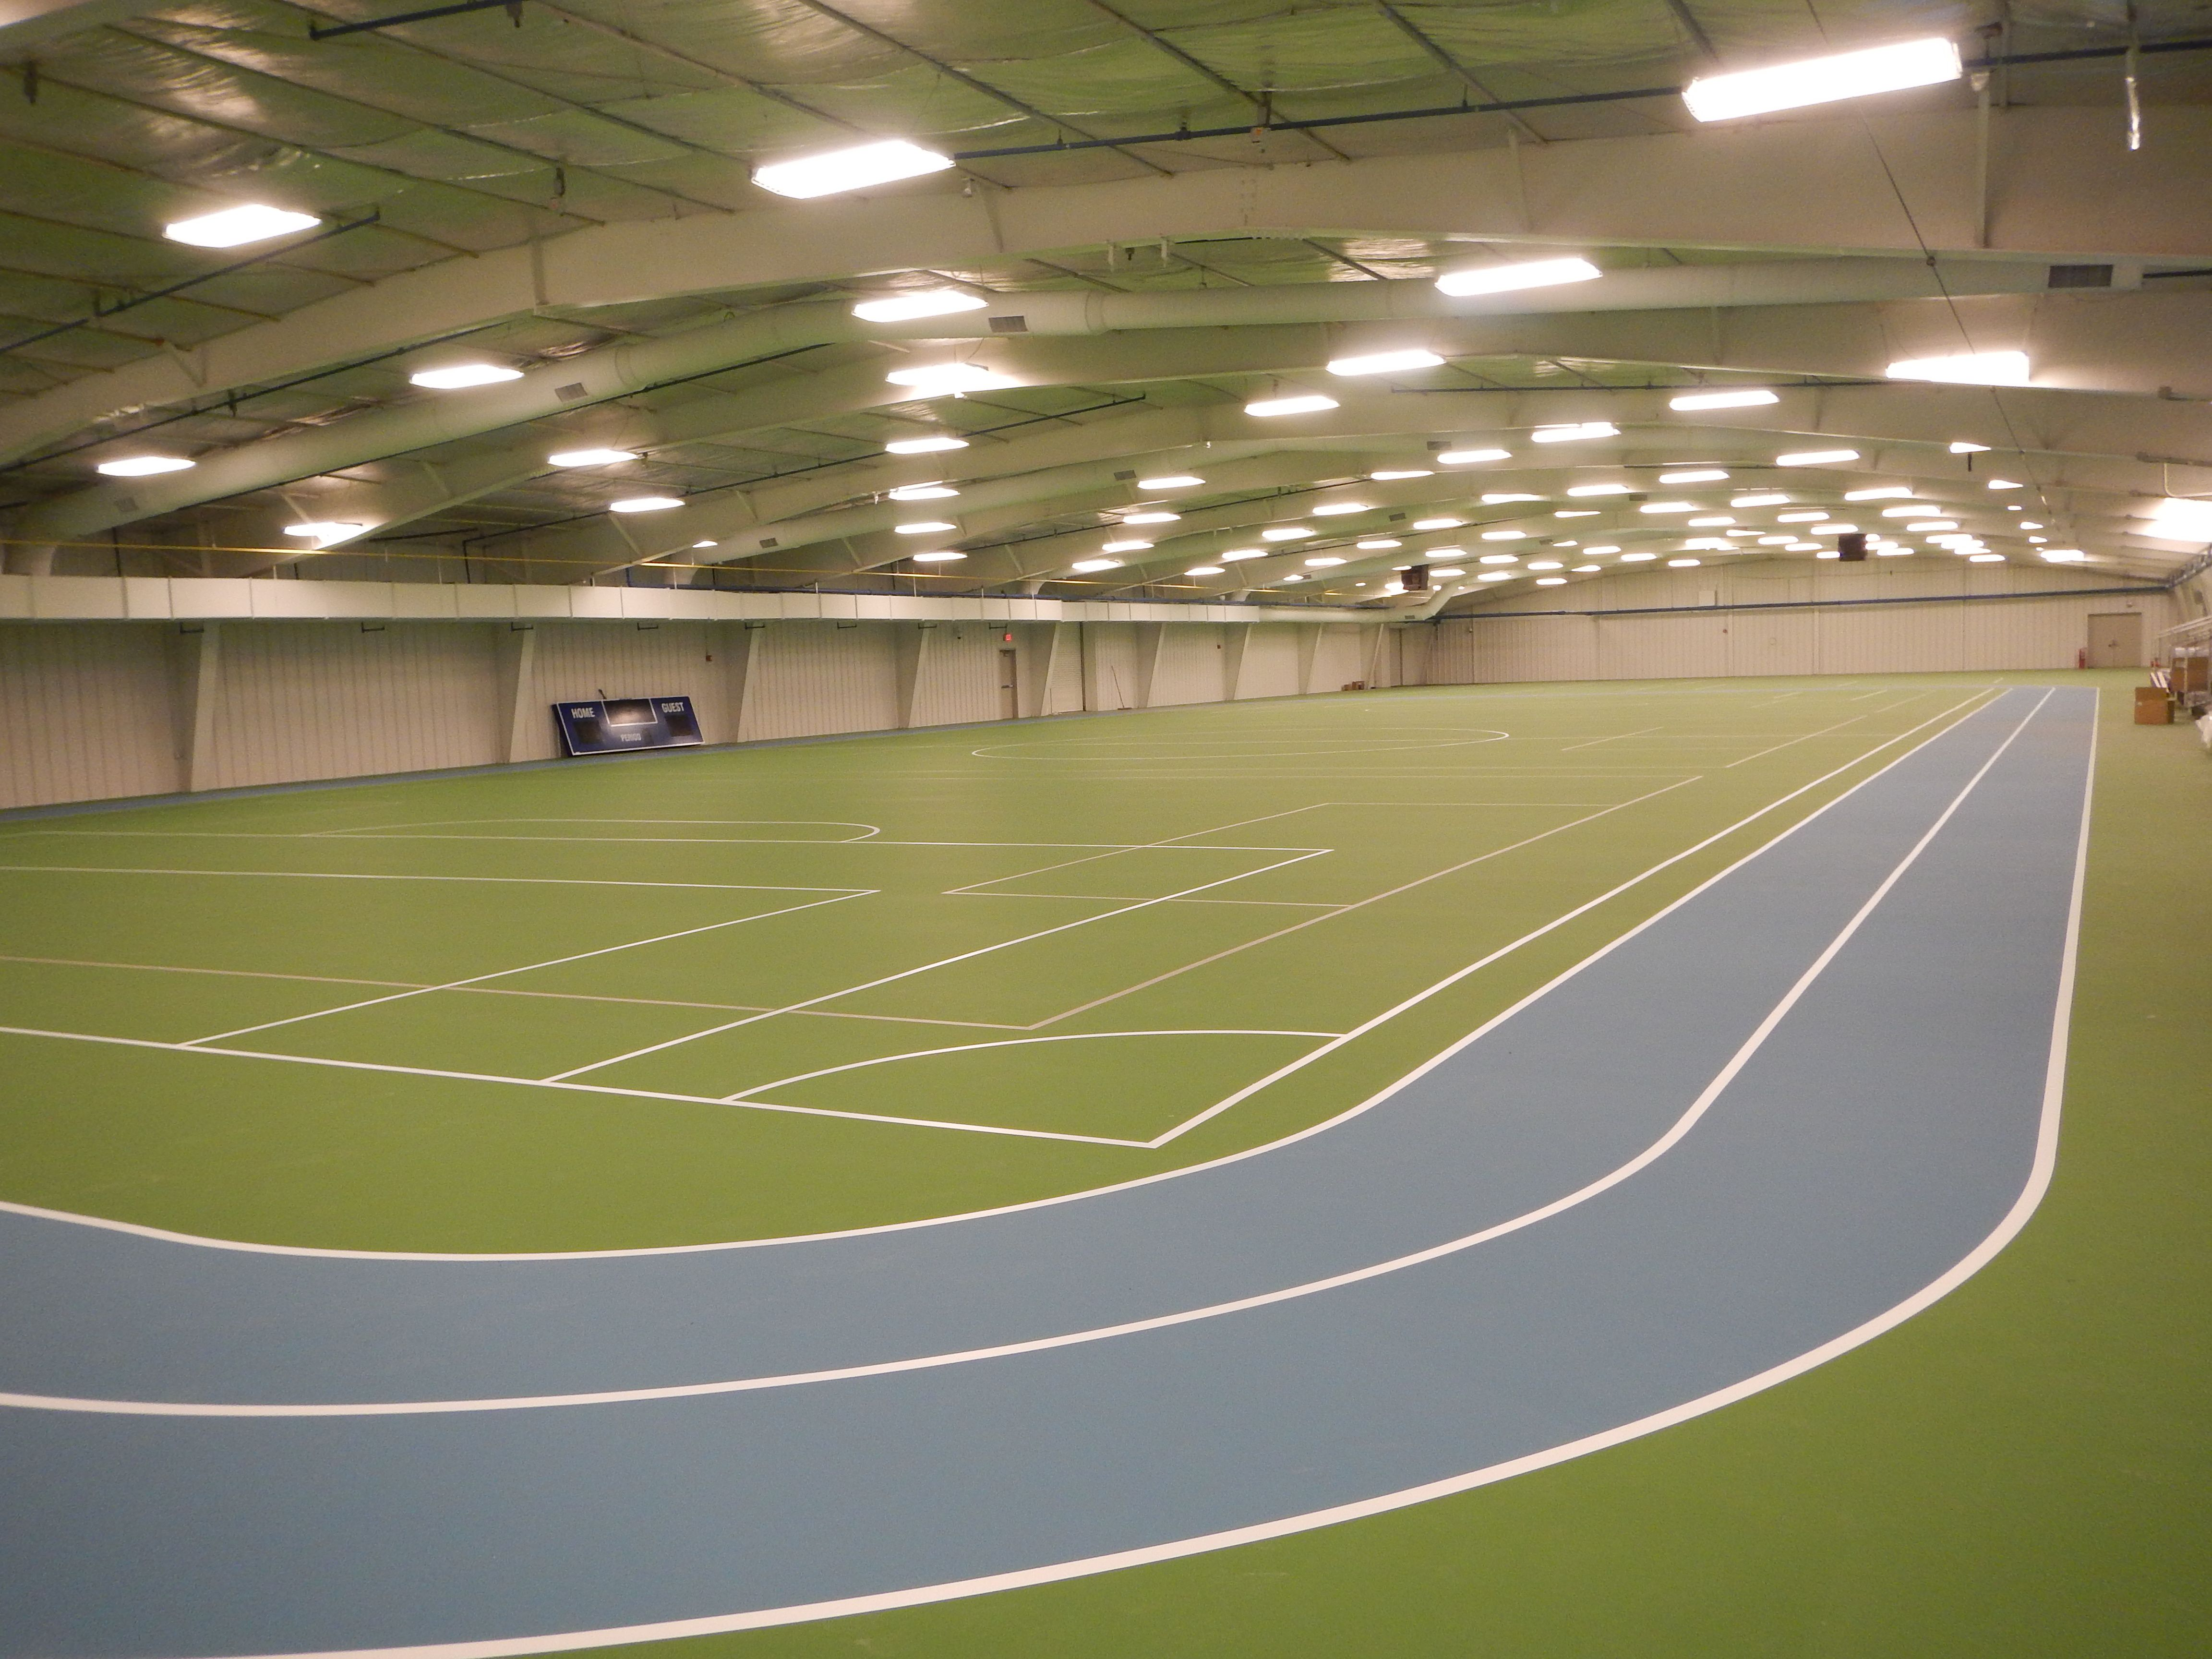 Arena 1 is an athletic exercise and multipurpose area